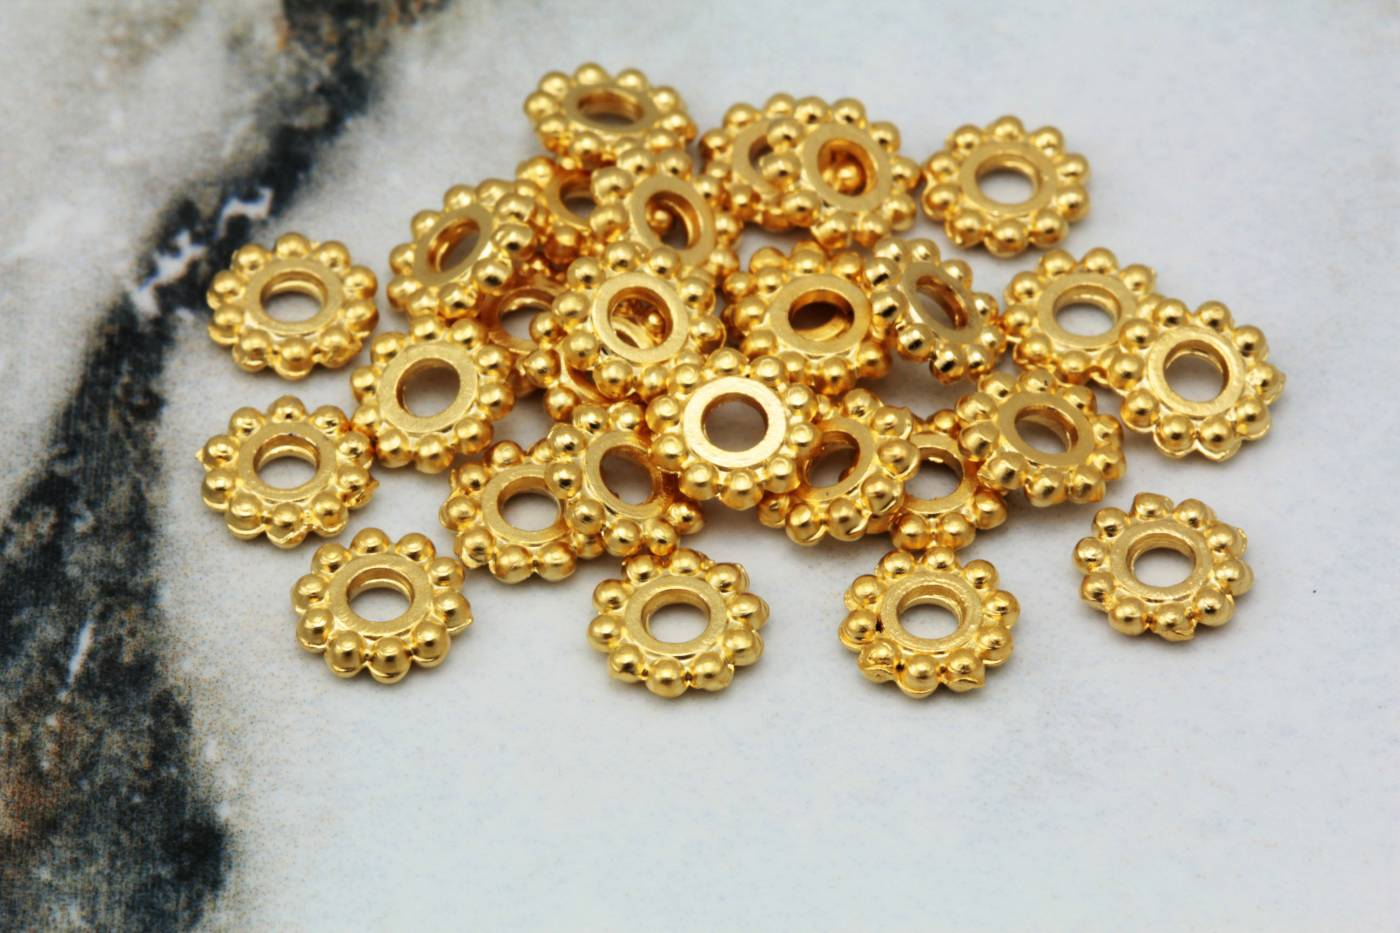 gold-plated-rondelle-spacer-bead-finding.jpg